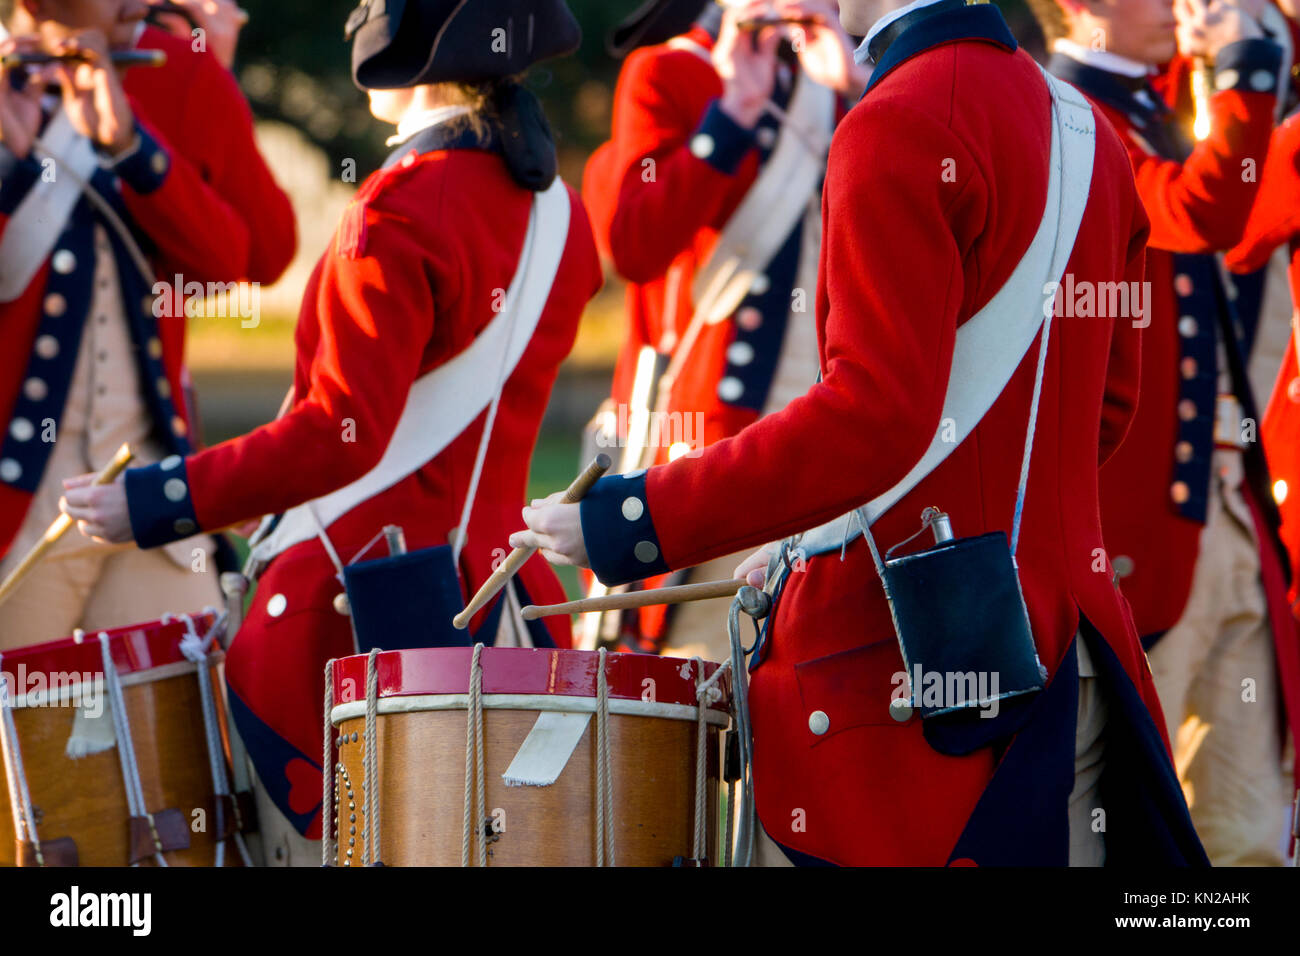 usa-virginia-va-colonial-williamsburg-the-fife-and-drum-corp-marching-KN2AHK.jpg